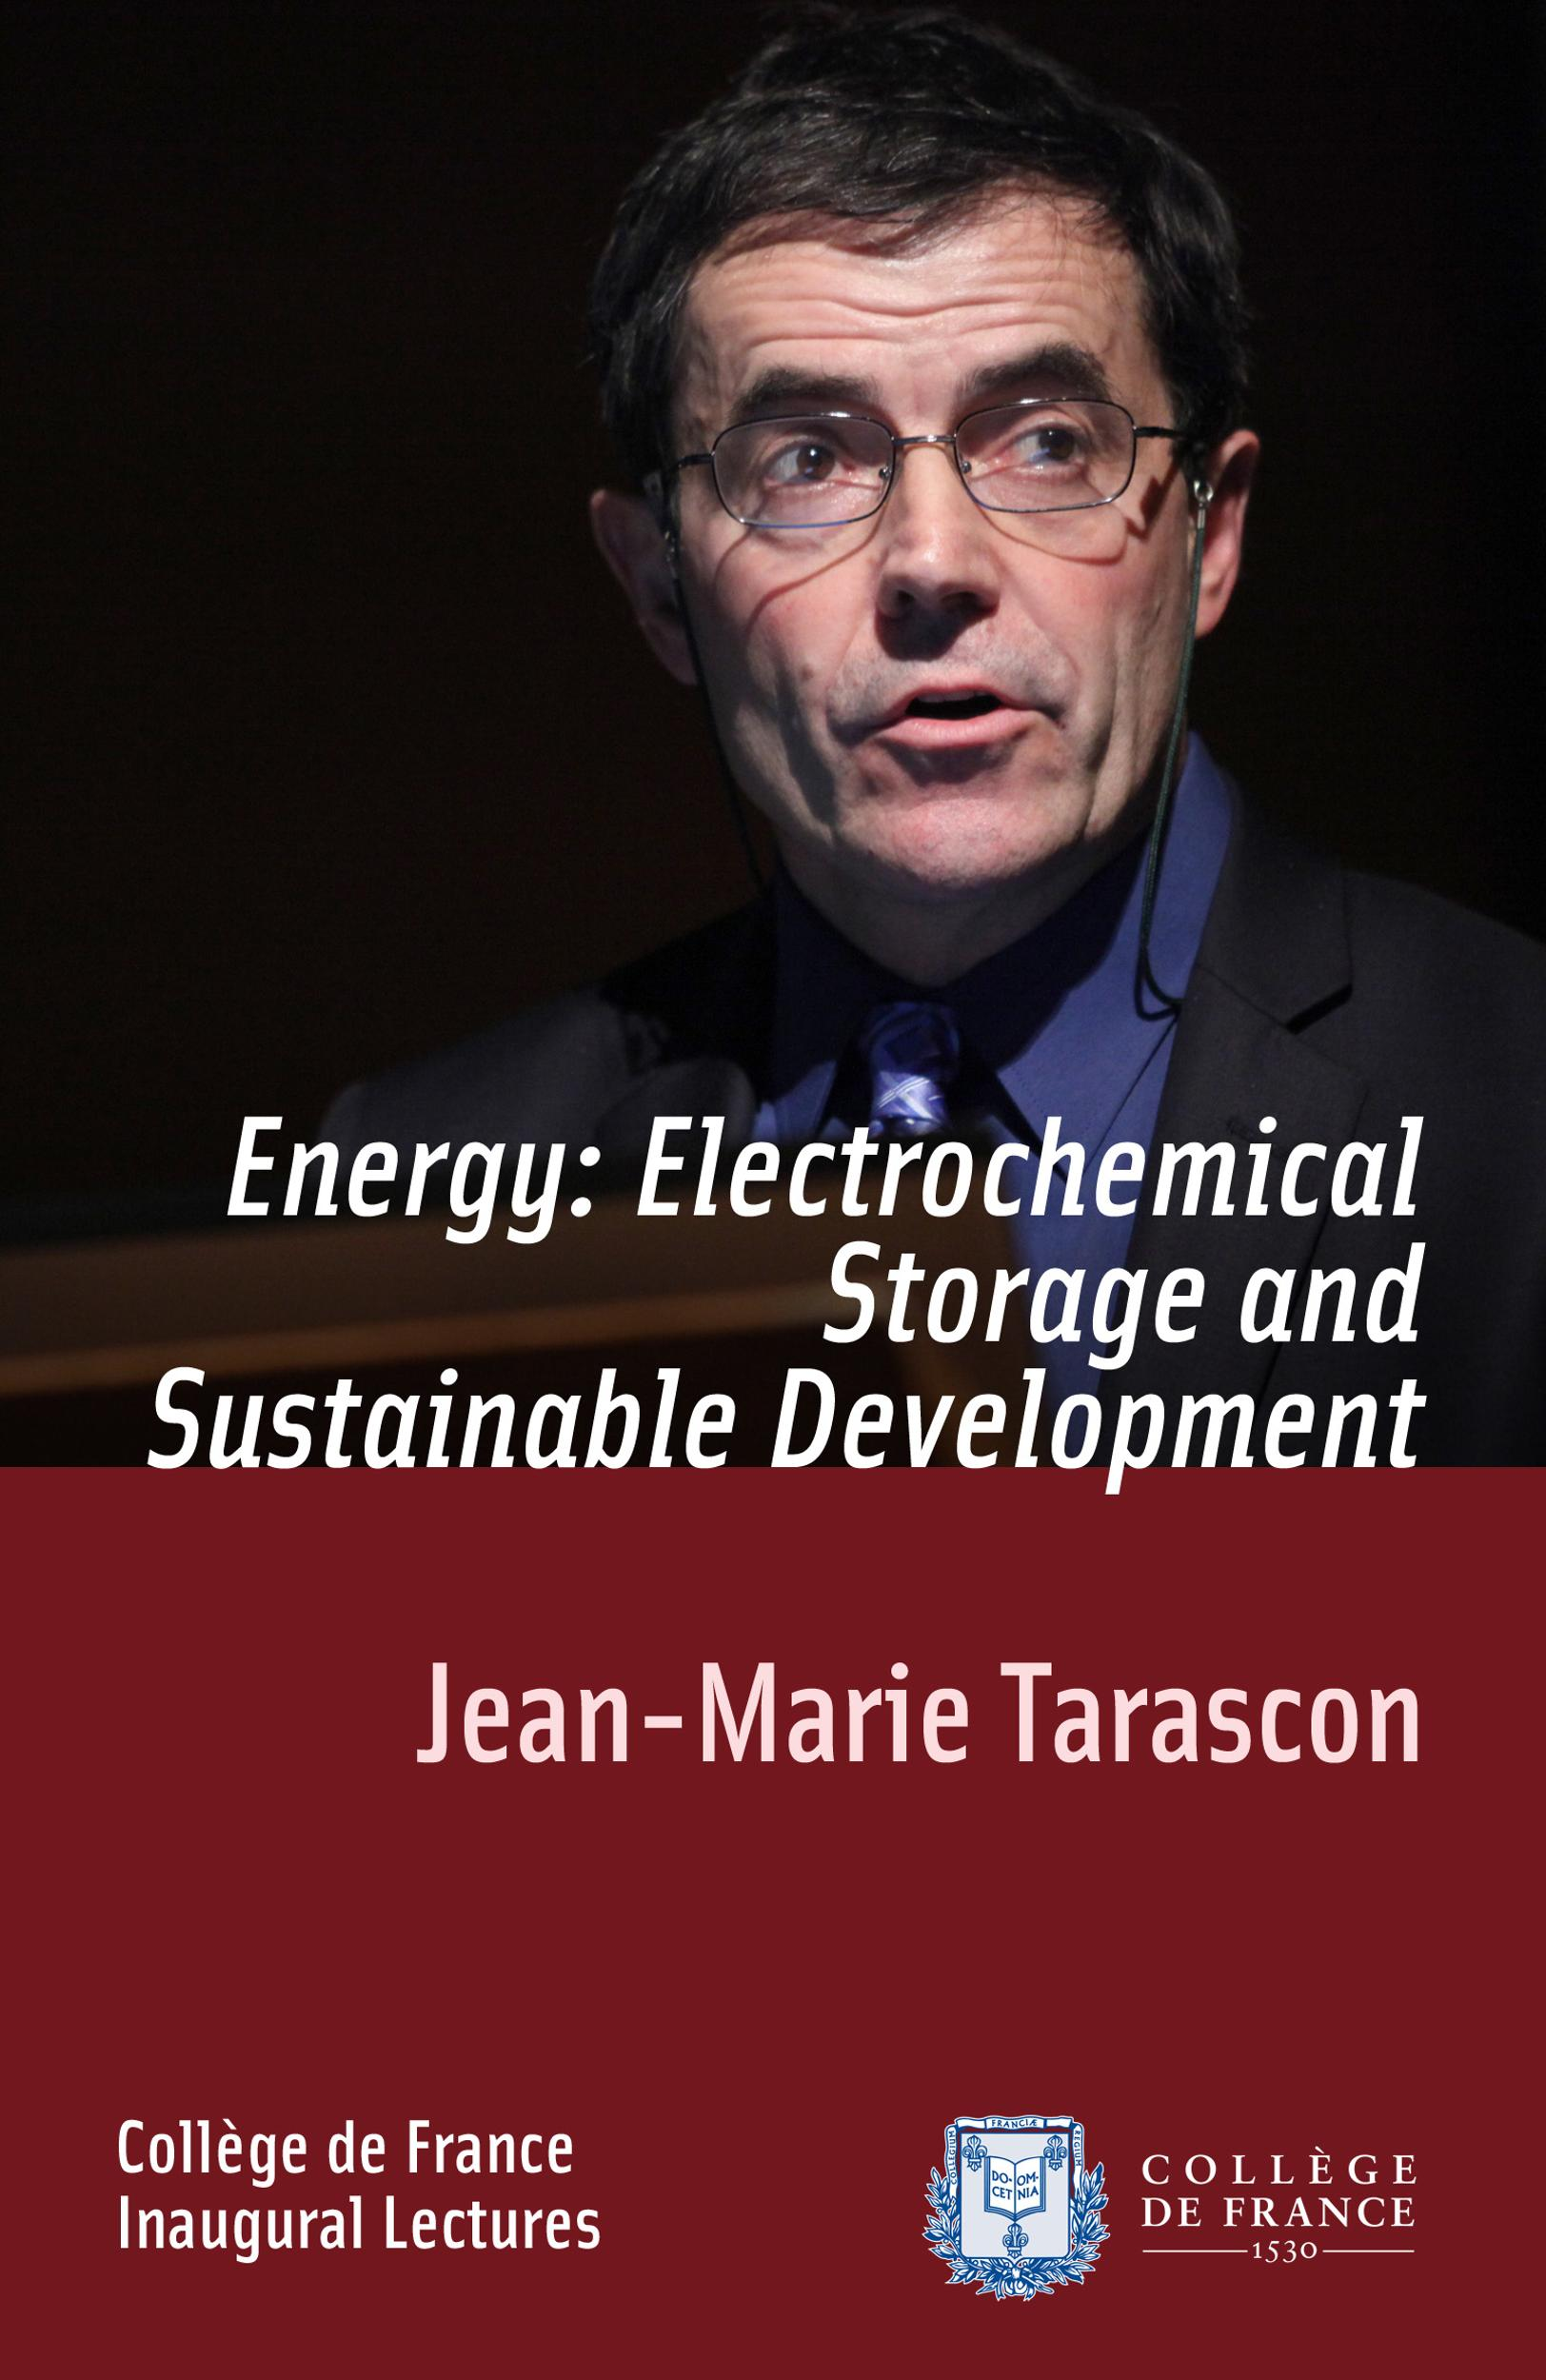 Energy: Electrochemical Storage and Sustainable Development, INAUGURAL LECTURE DELIVERED ON THURSDAY 9 DECEMBER 2010